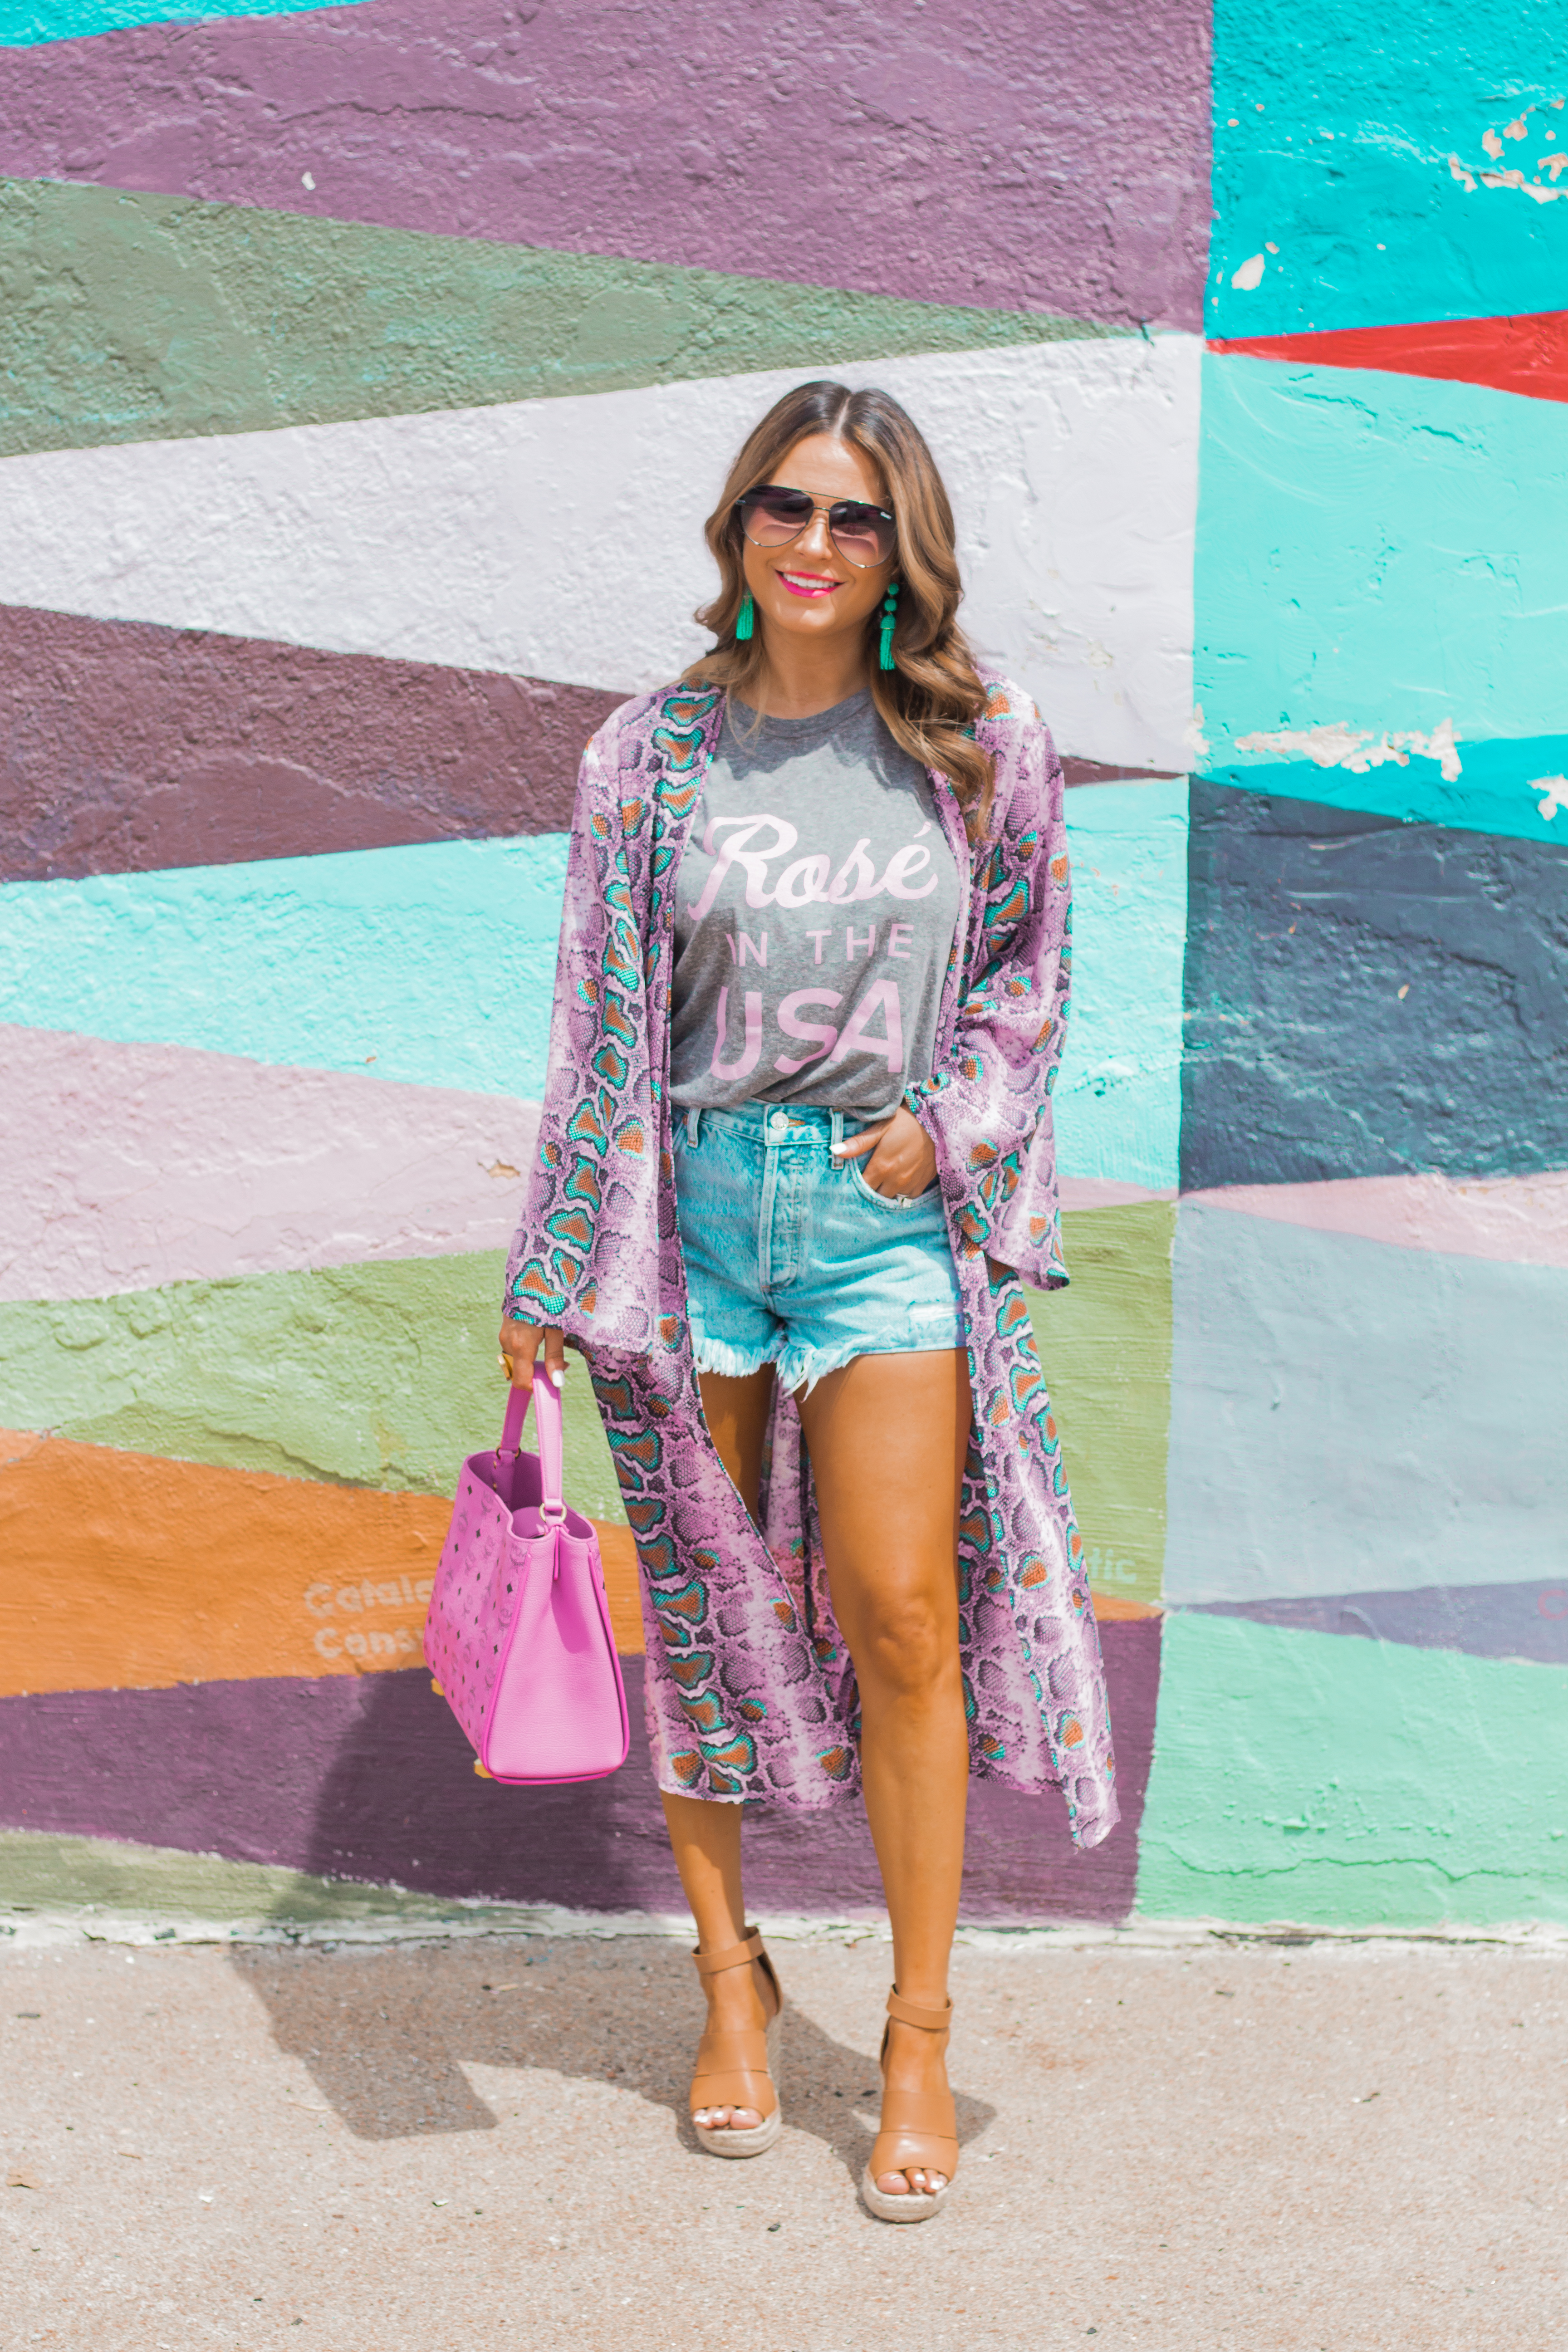 Rosé in the USA-Buddy Love-Kimono-Sugar Boutique-Women's Fashion-Summer Outfit-4th of July-Espadrille Wedges-MCM Bag-Pink Bag-Omaha Blogger-Sabby Style-Agolde Jean Shorts-Turquoise Jewelry-Quay Sunglasses-Colorful Style-Omaha-Nebraska-BaubleBar Earrings-1